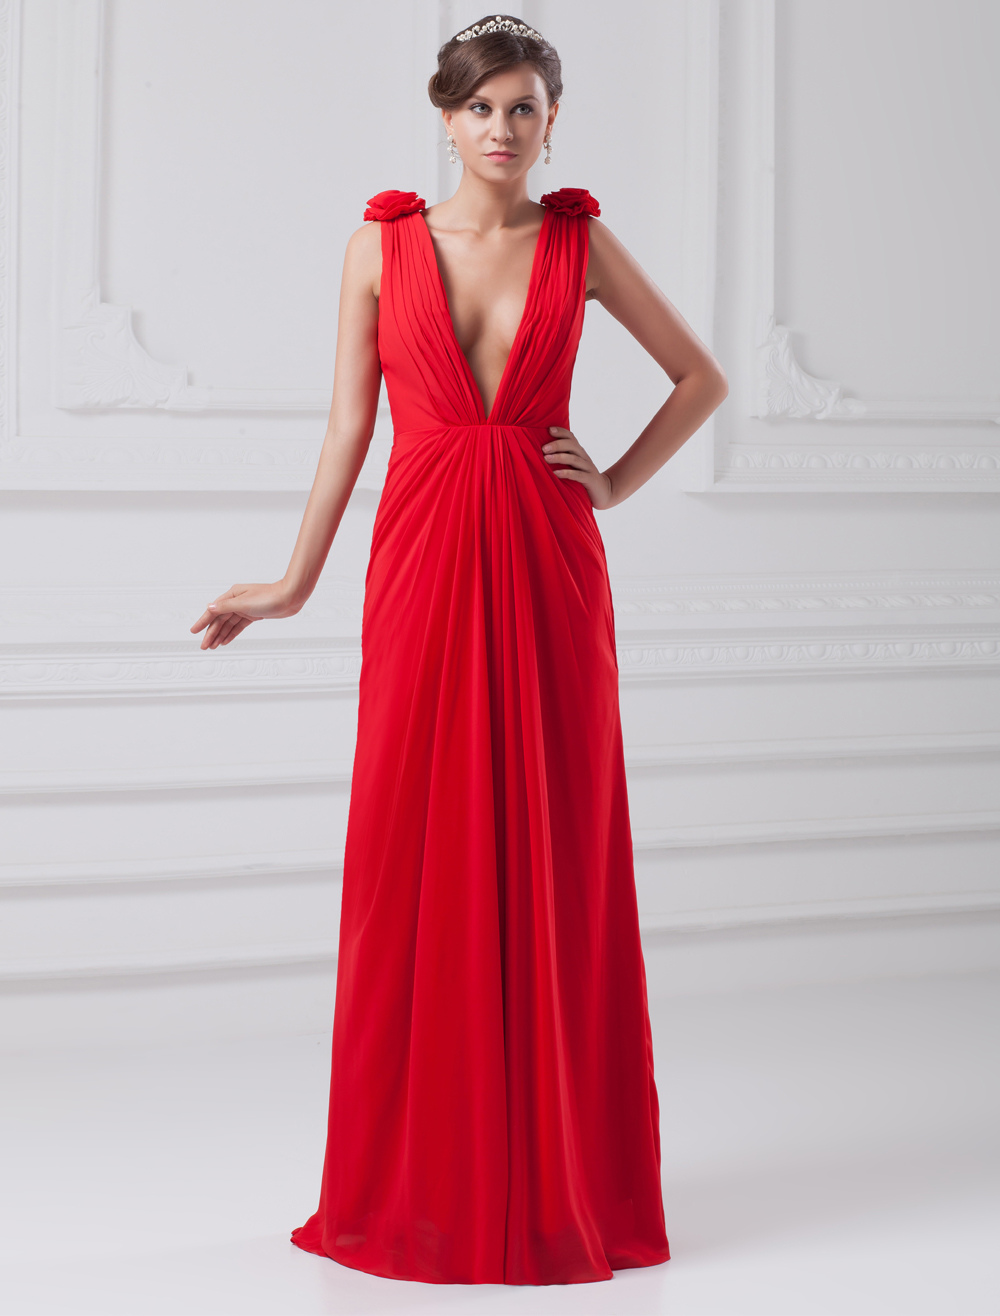 Chic Red Chiffon Floral V-Neck Fashion Evening Dress